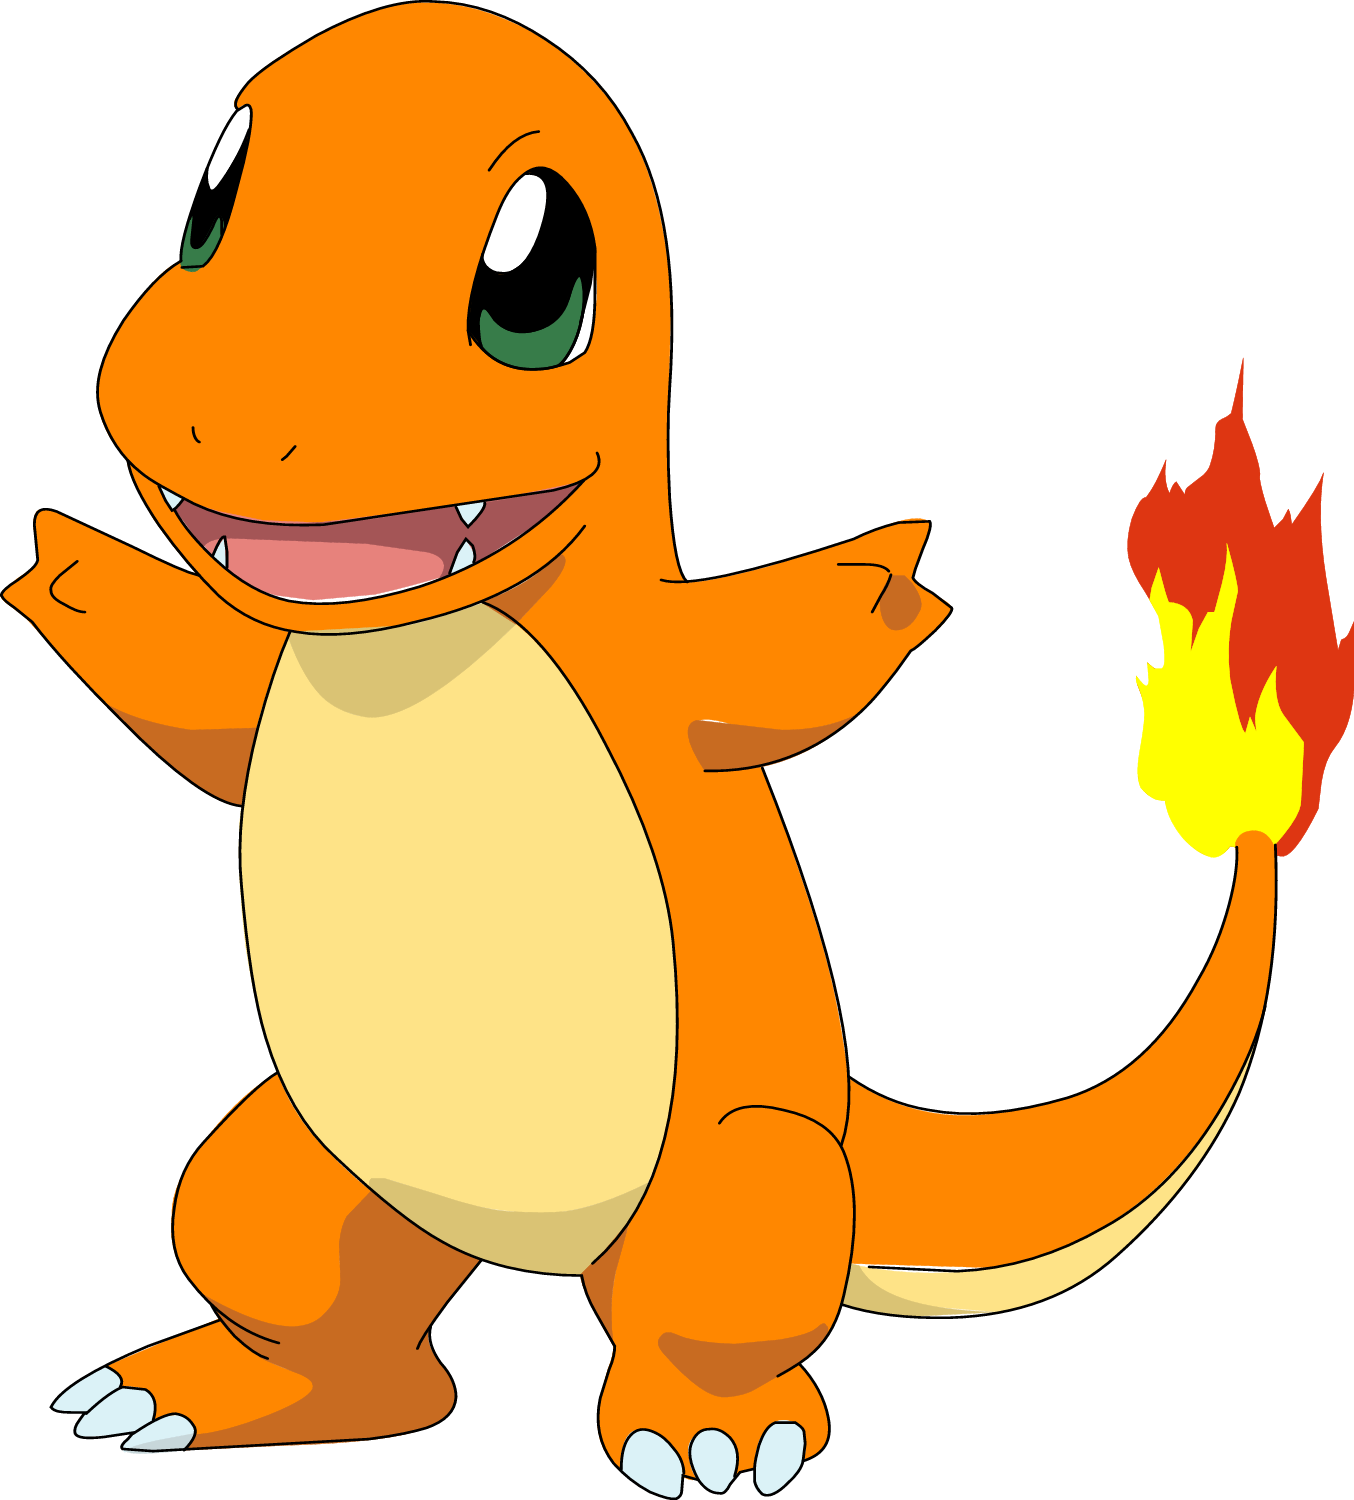 Pokemon PNG images free download.